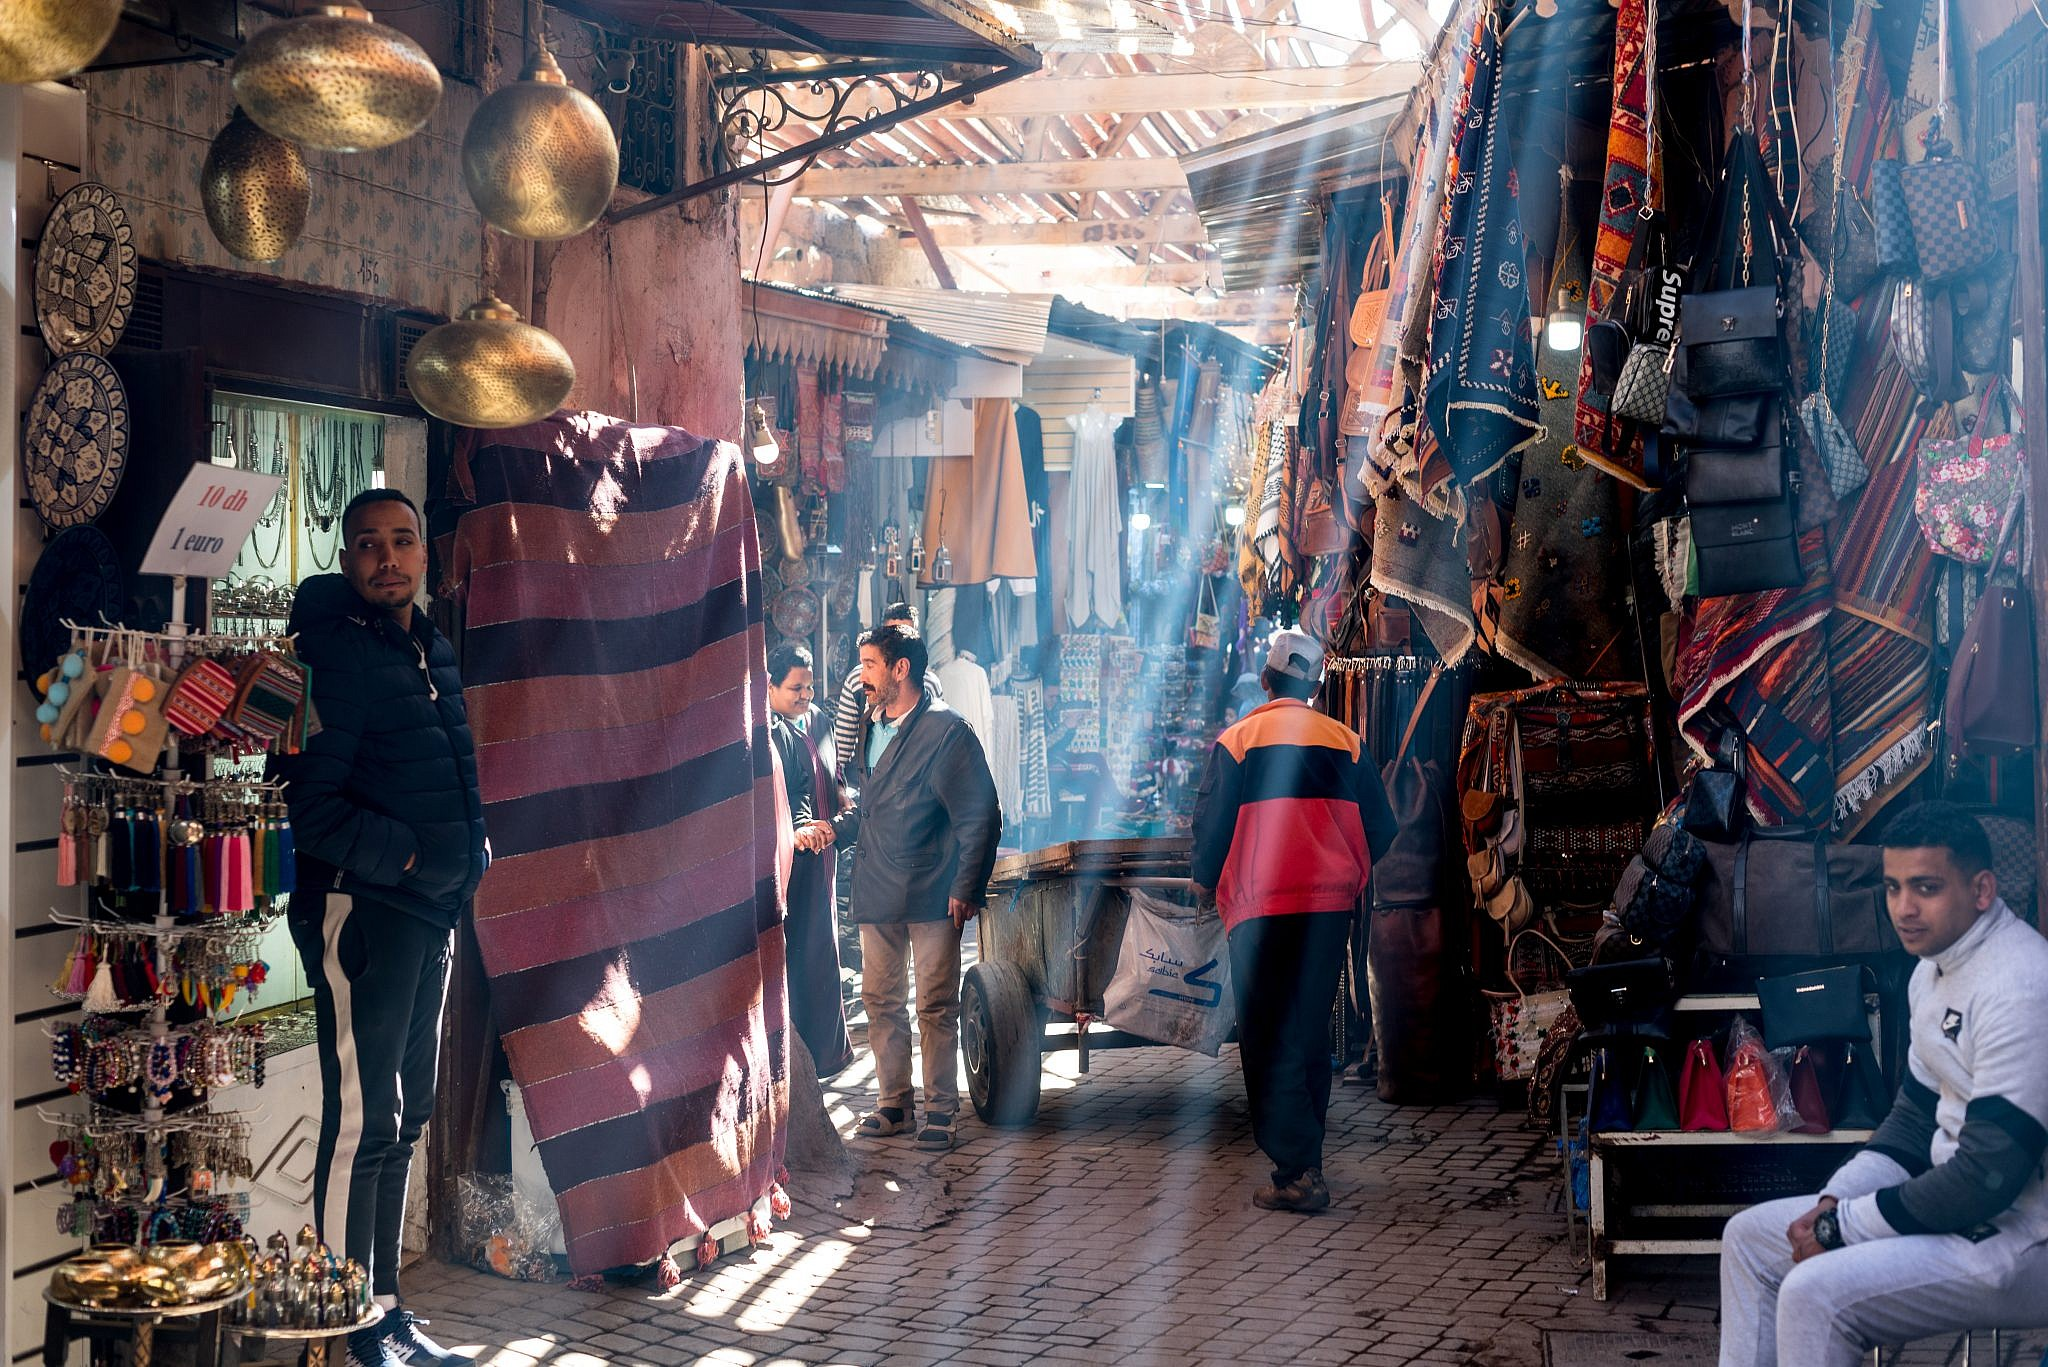 Daylight in the souk, 2